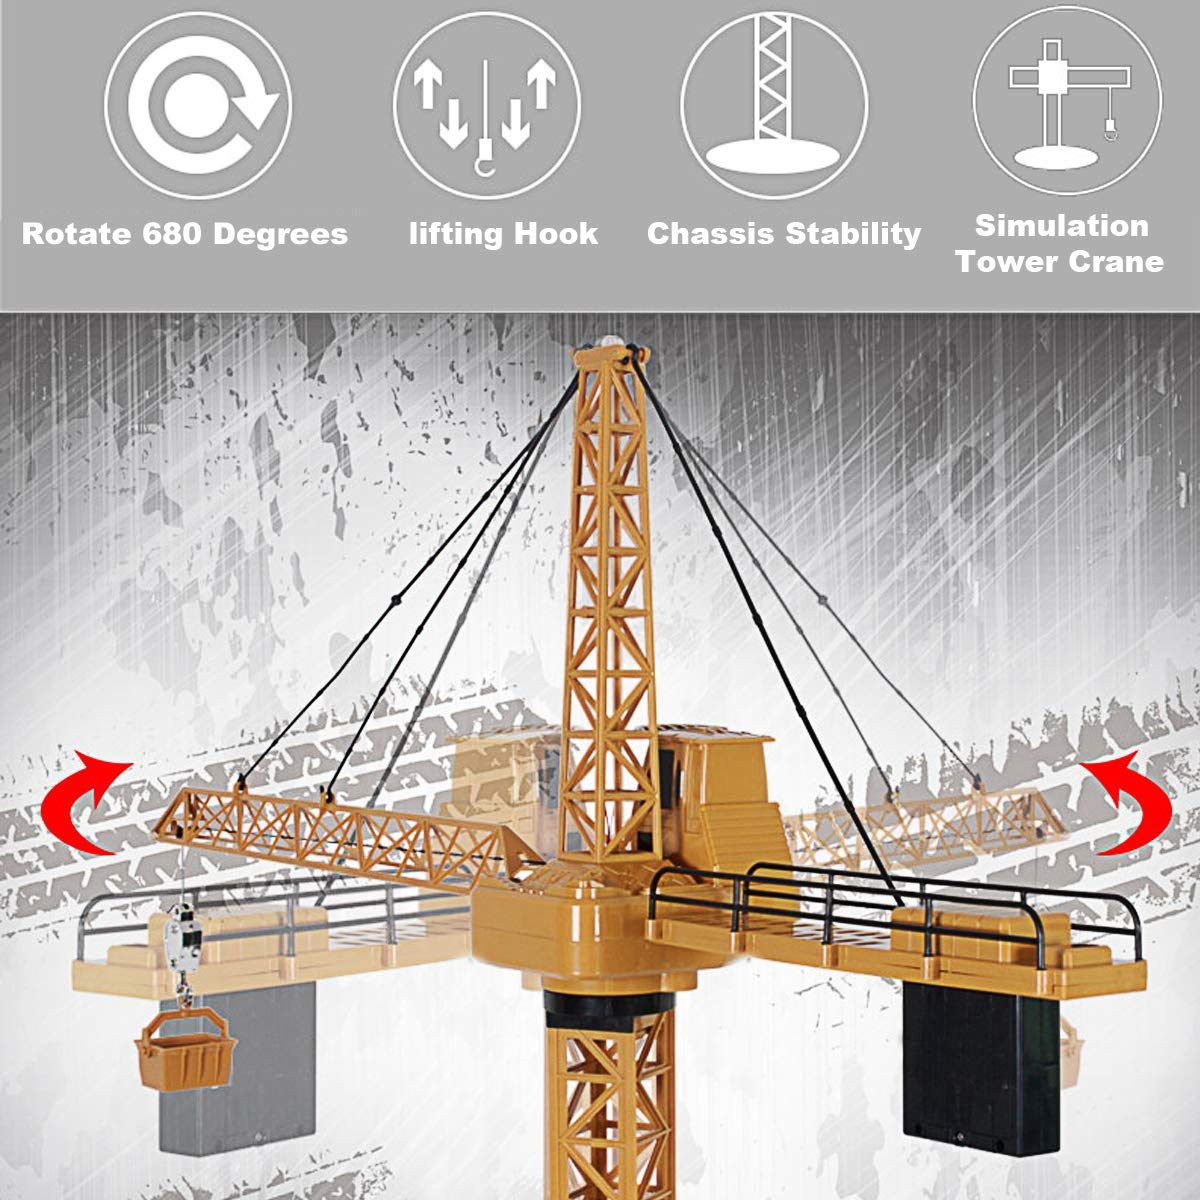 Fistone 6 Channel RC Tower Crane, 50.4 inches 680 Degree Rotation Lift Model 2.4GHz Remote Control Construction Crane Toy with Tower Light and Simulation Sound for Kids by Fistone (Image #4)